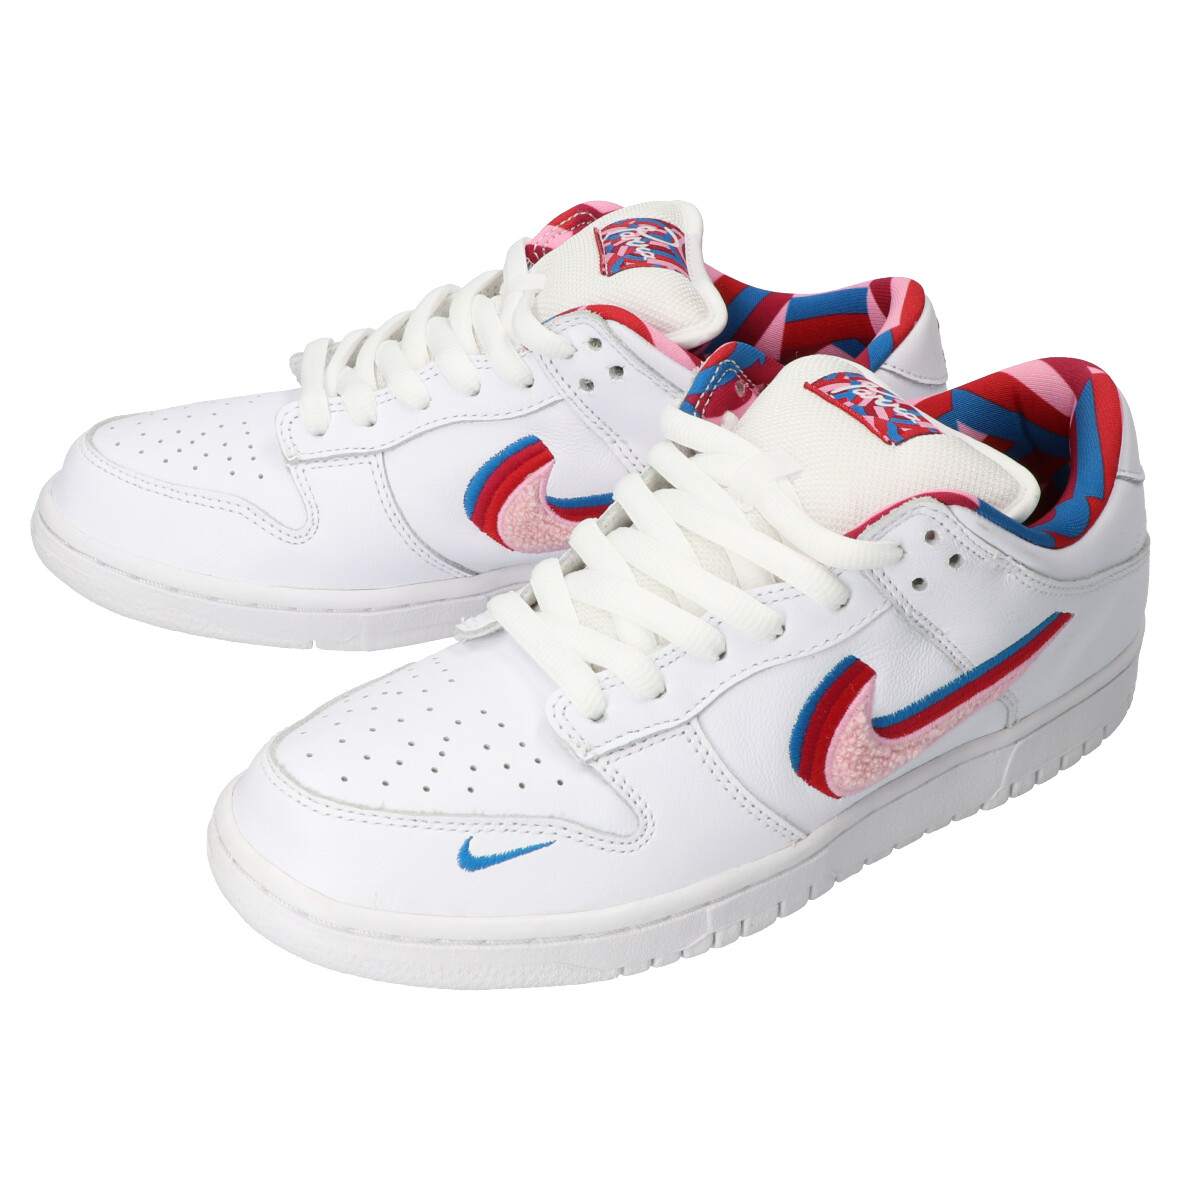 Nike SB x Parra Dunk Low OG QS Scarpa (white pink rise) fare